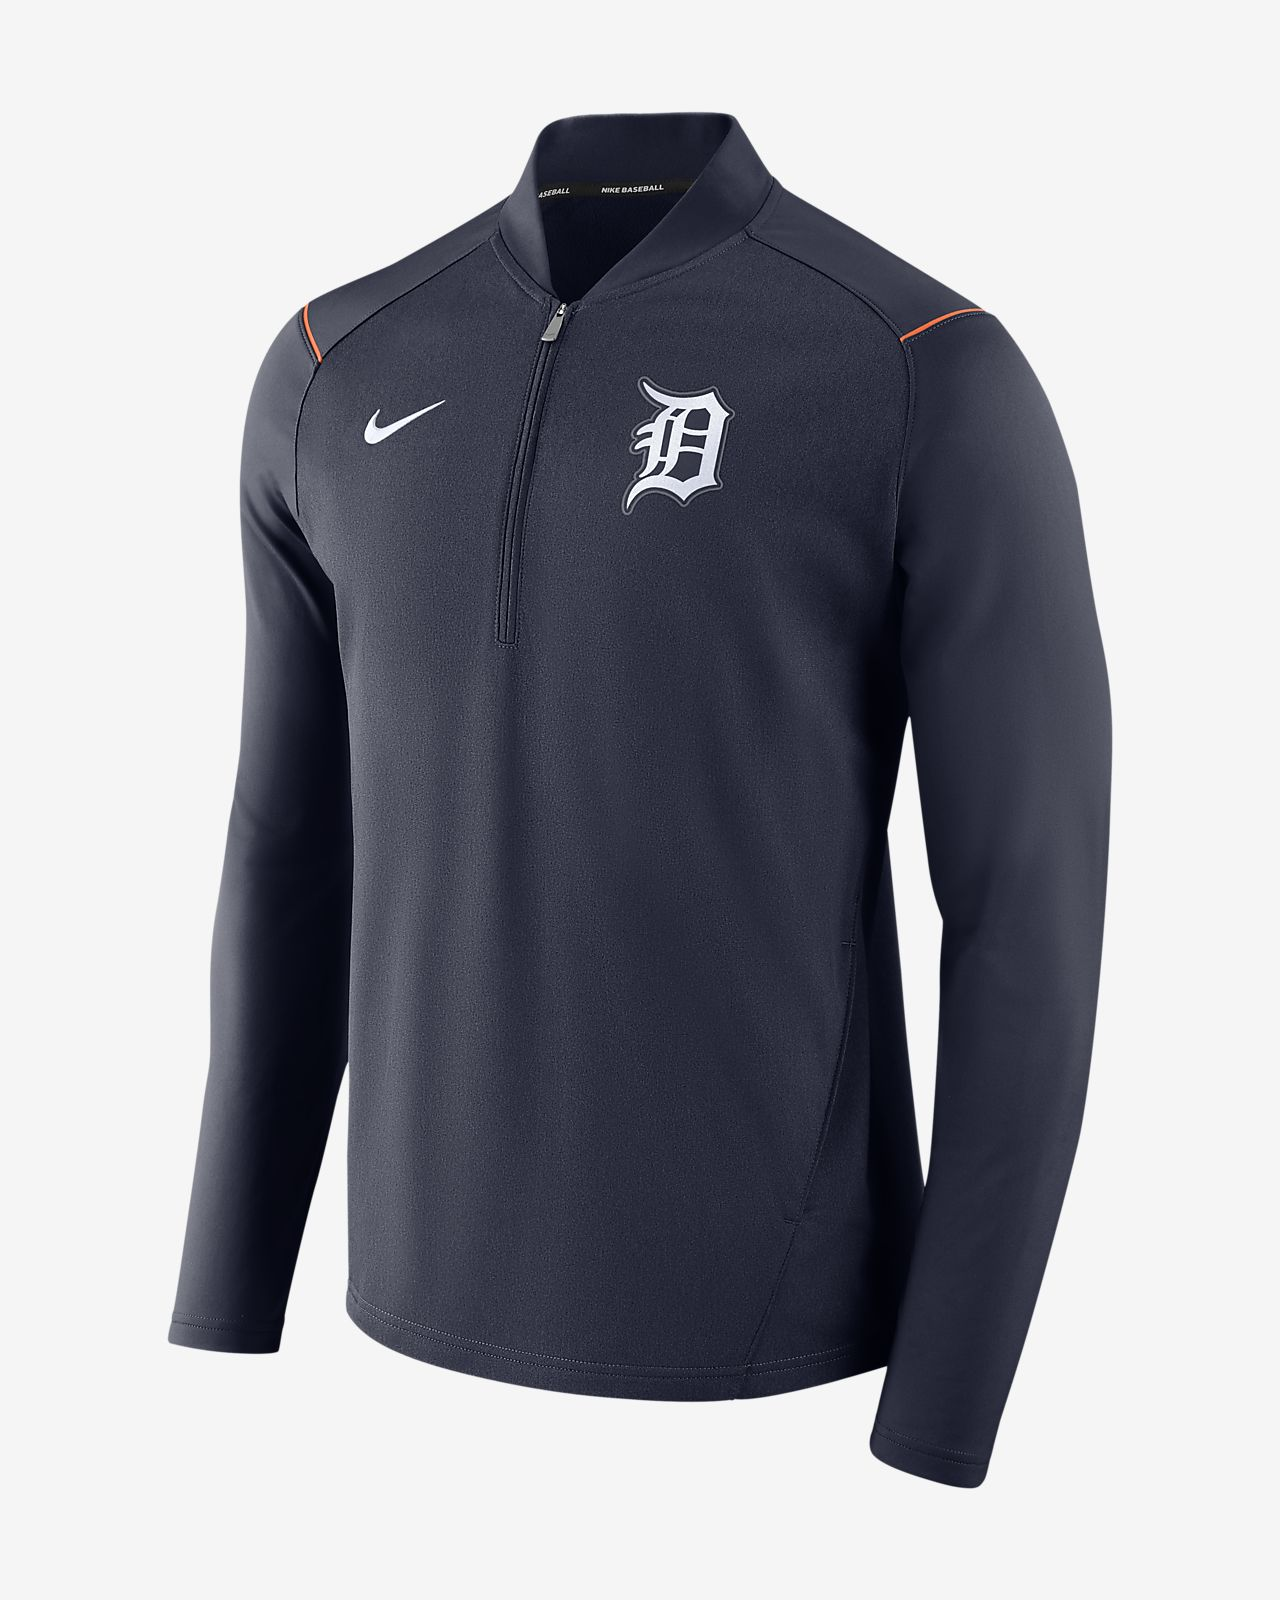 Nike Dri-FIT Elite (MLB Tigers) Men s Top. Nike.com ed99f083a